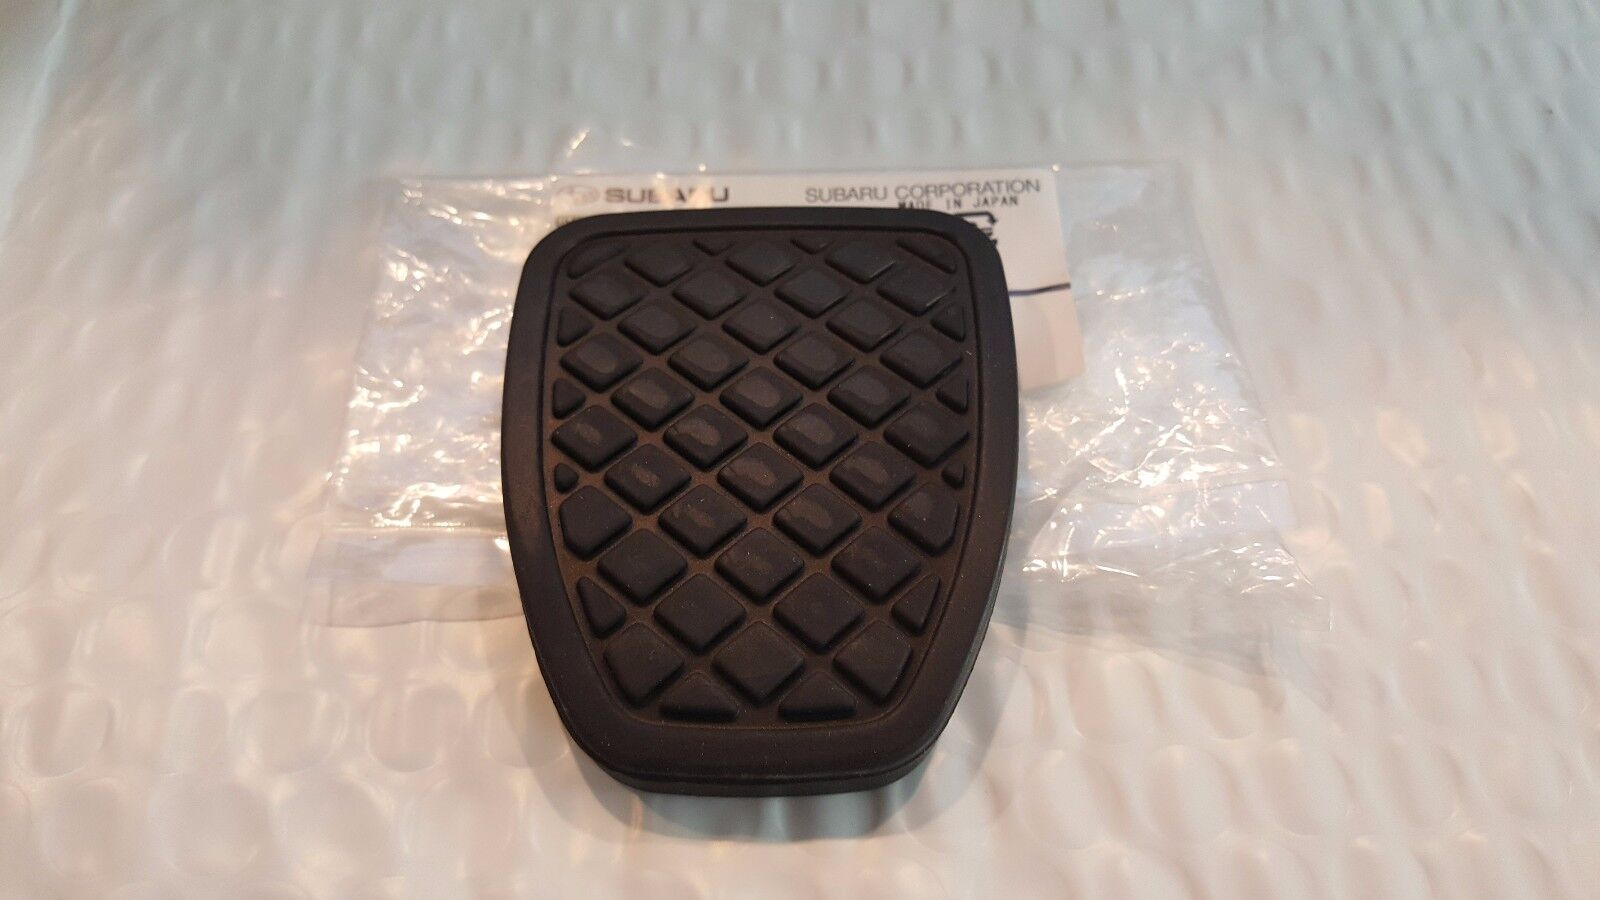 GENUINE OEM 2PCS BRAKE /& CLUTCH PEDAL PAD RUBBER COVER FOR SUBARU FORESTER MT